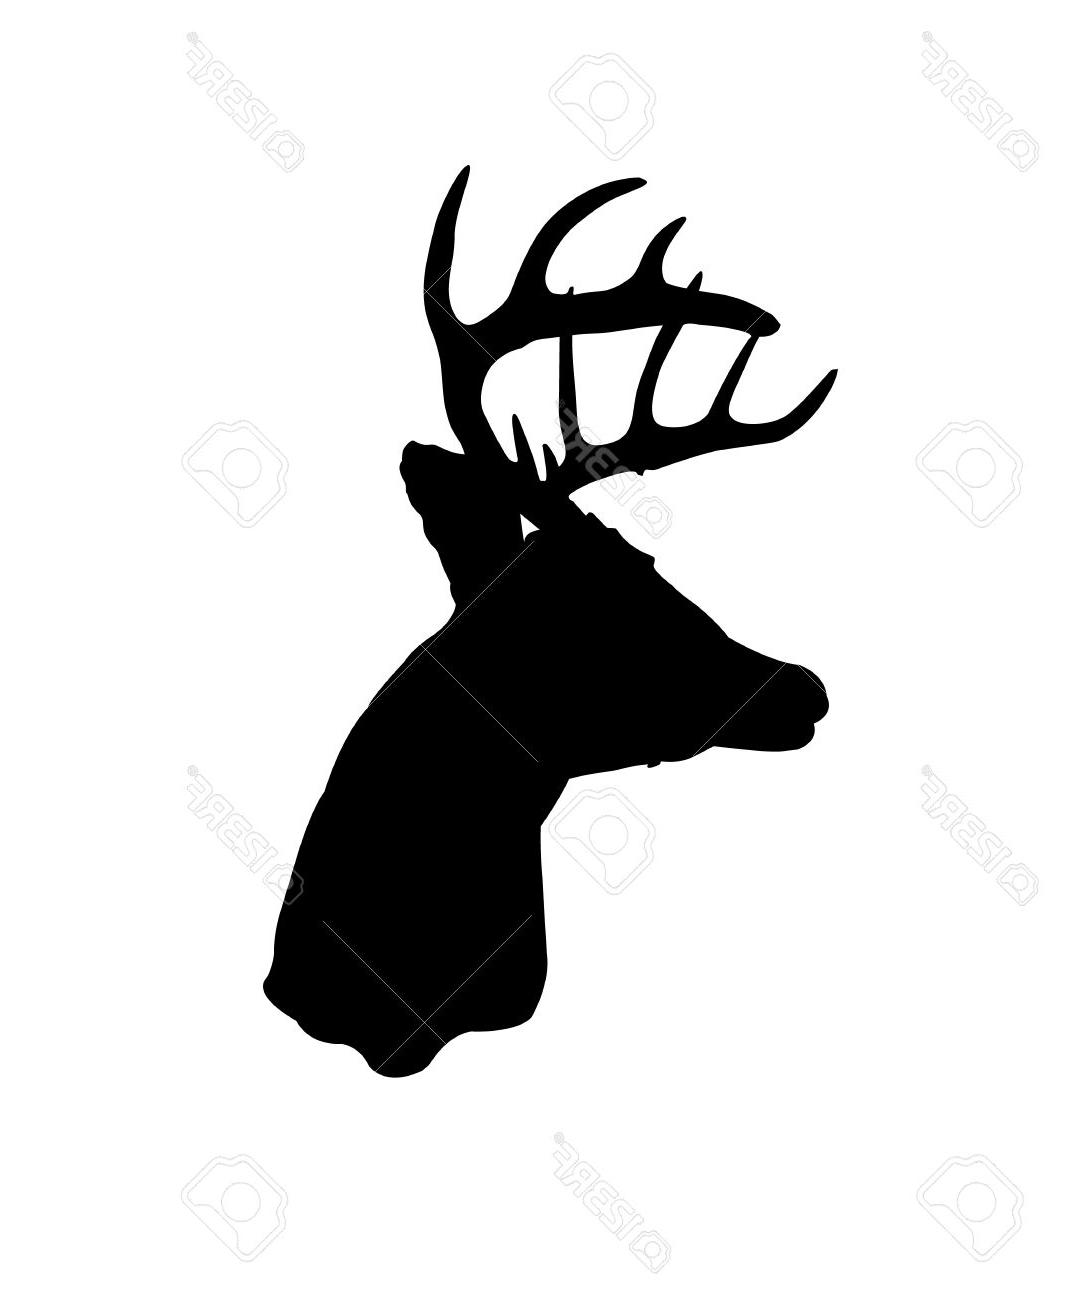 1077x1300 Best Hd Black Silhouette Of Whitetail Deer Clip Art Stock Vector